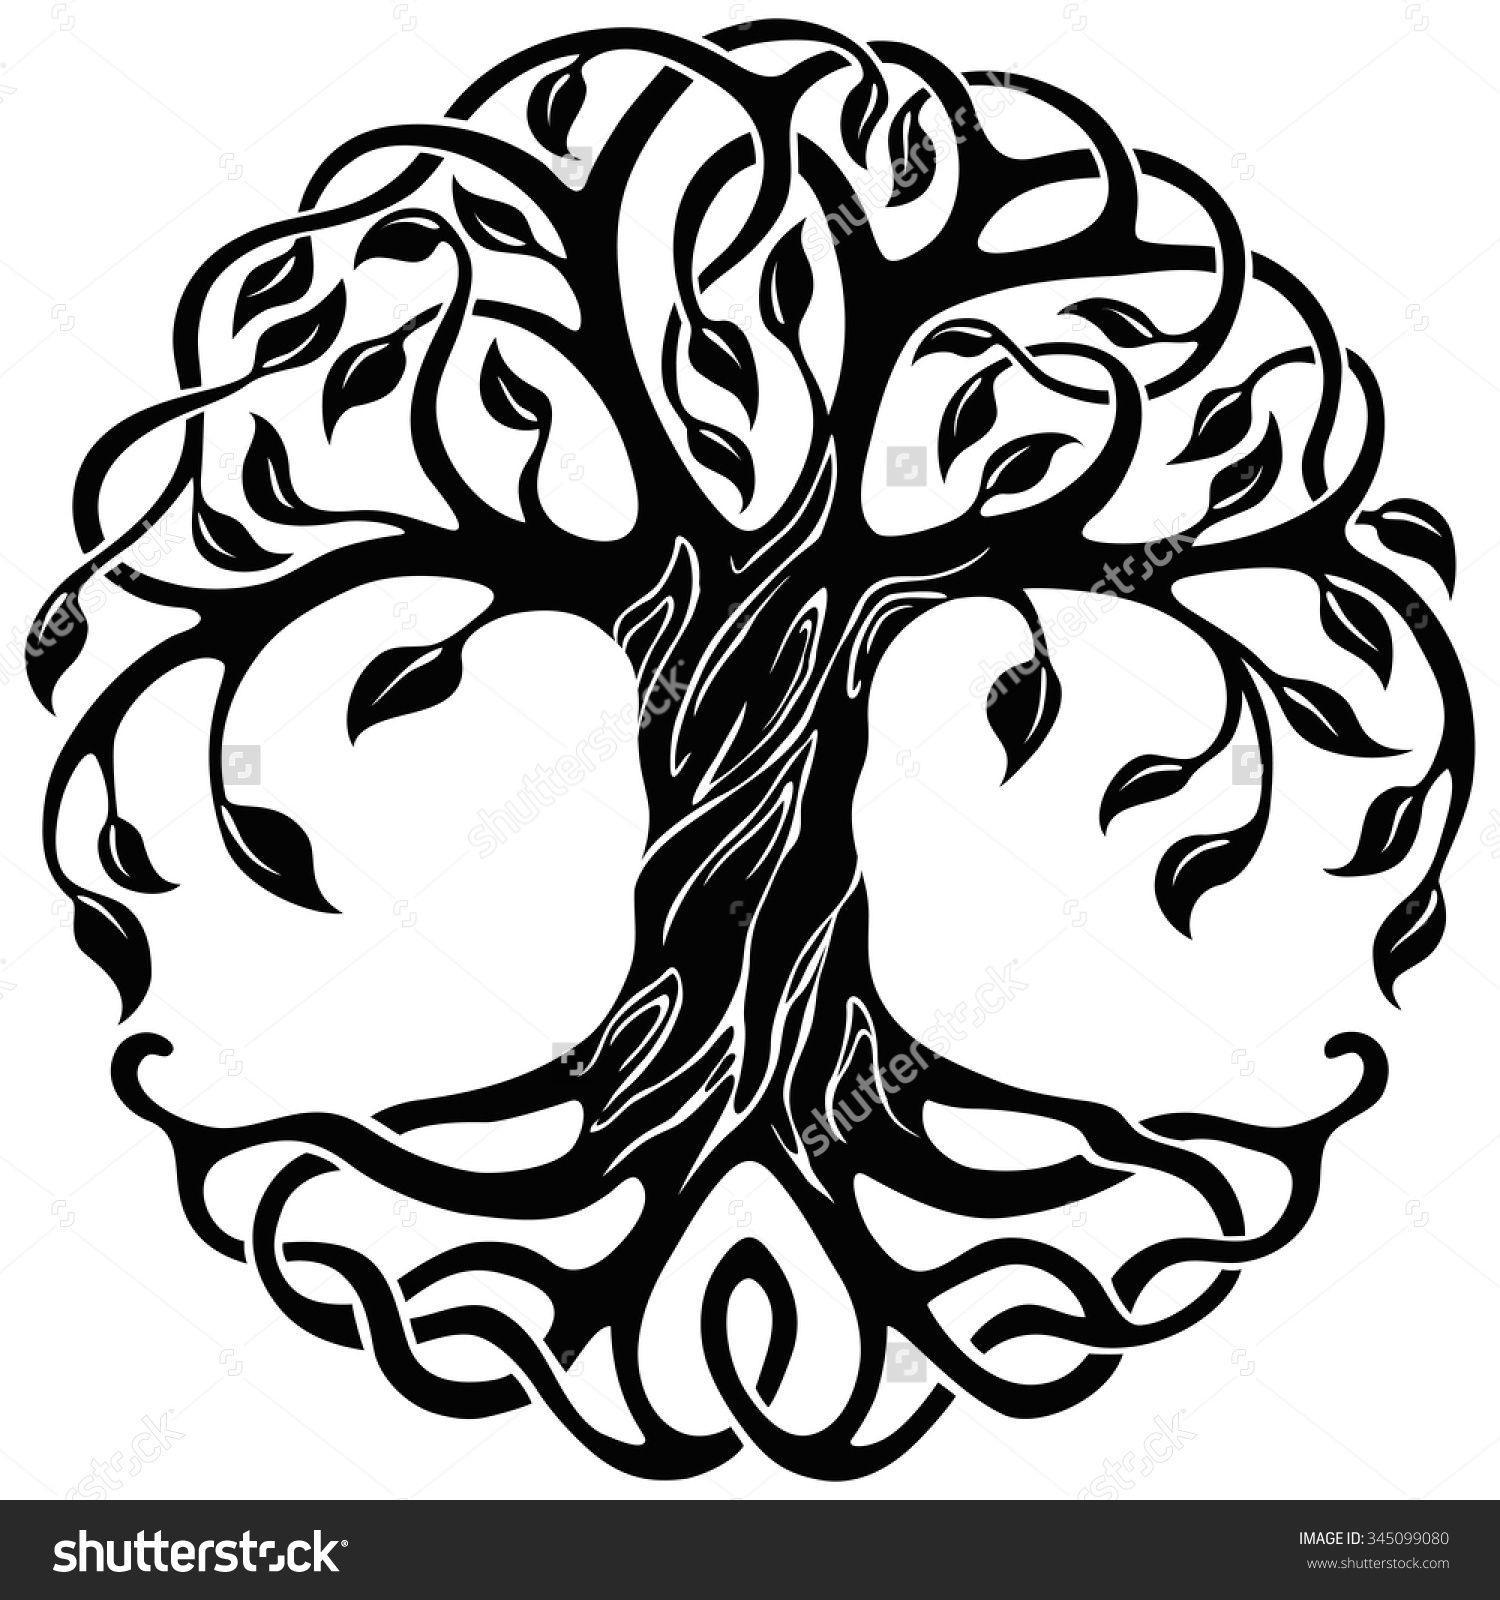 Celtic Tree Of Life Stock Photos, Images, & Pictures